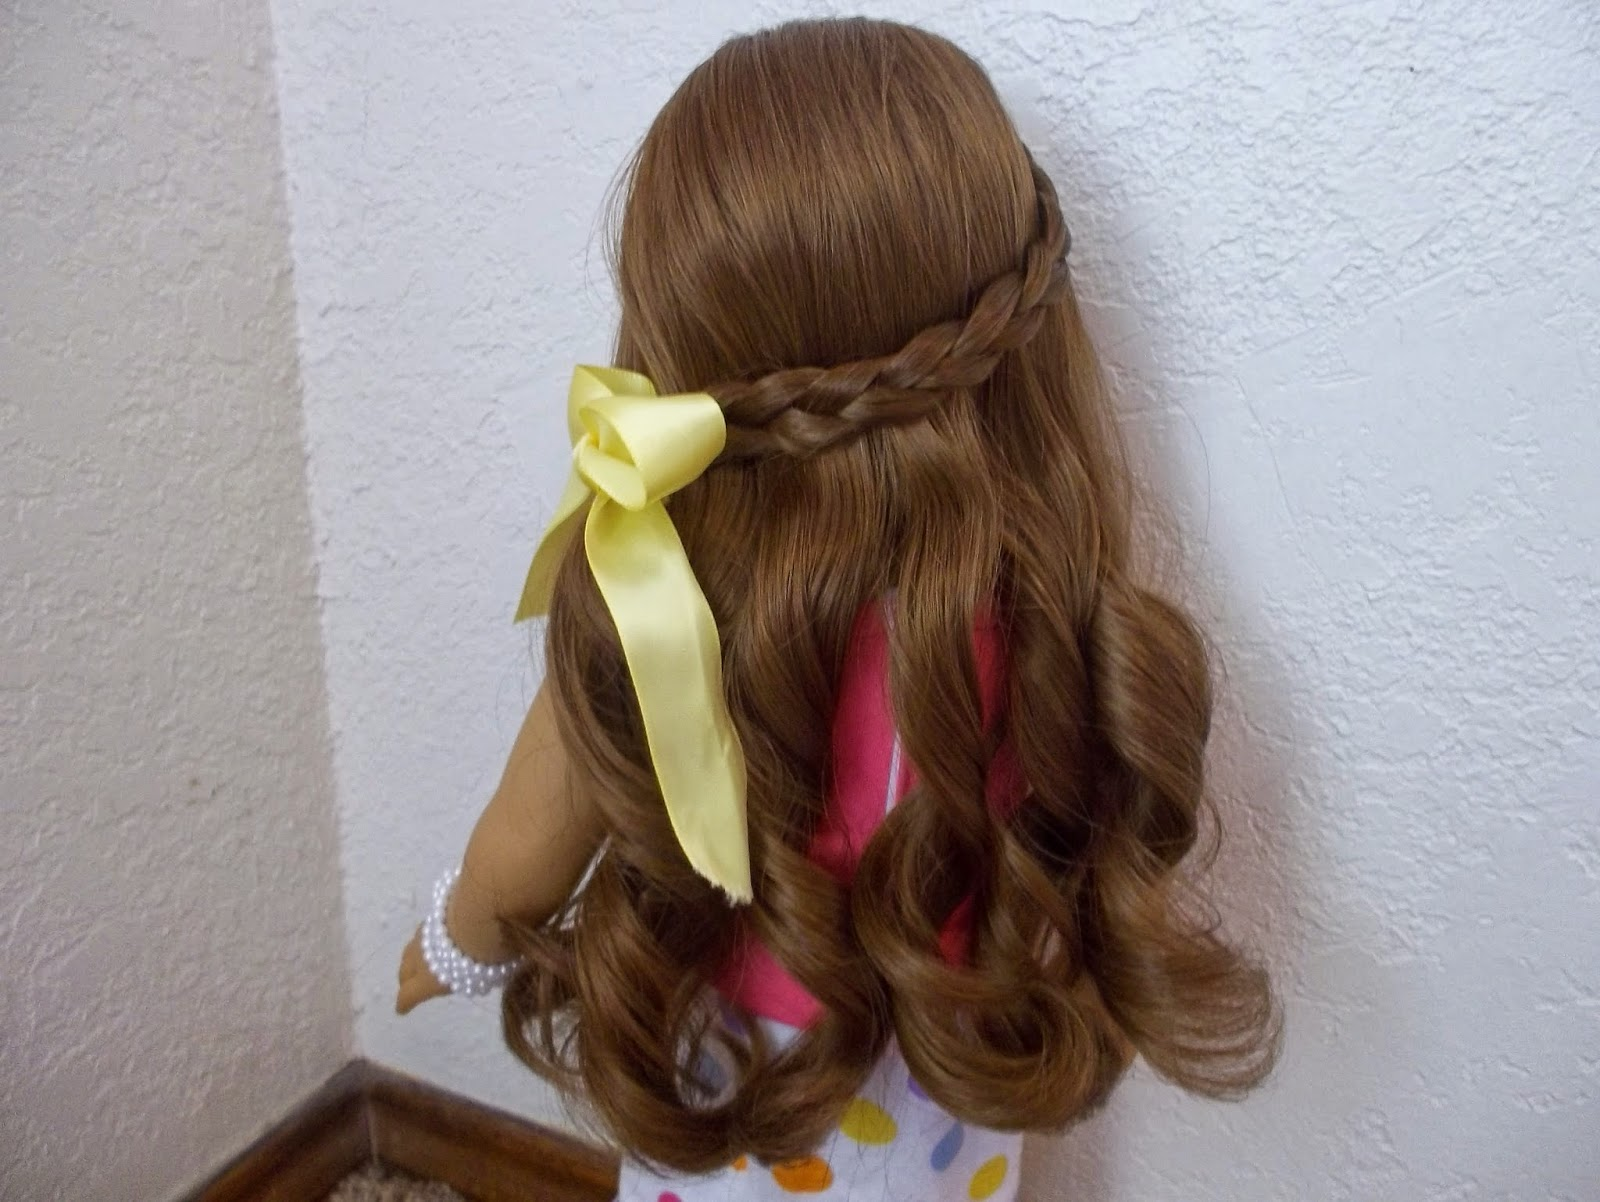 Hair Styles For Spring: Cute American Girl Doll Hairstyles